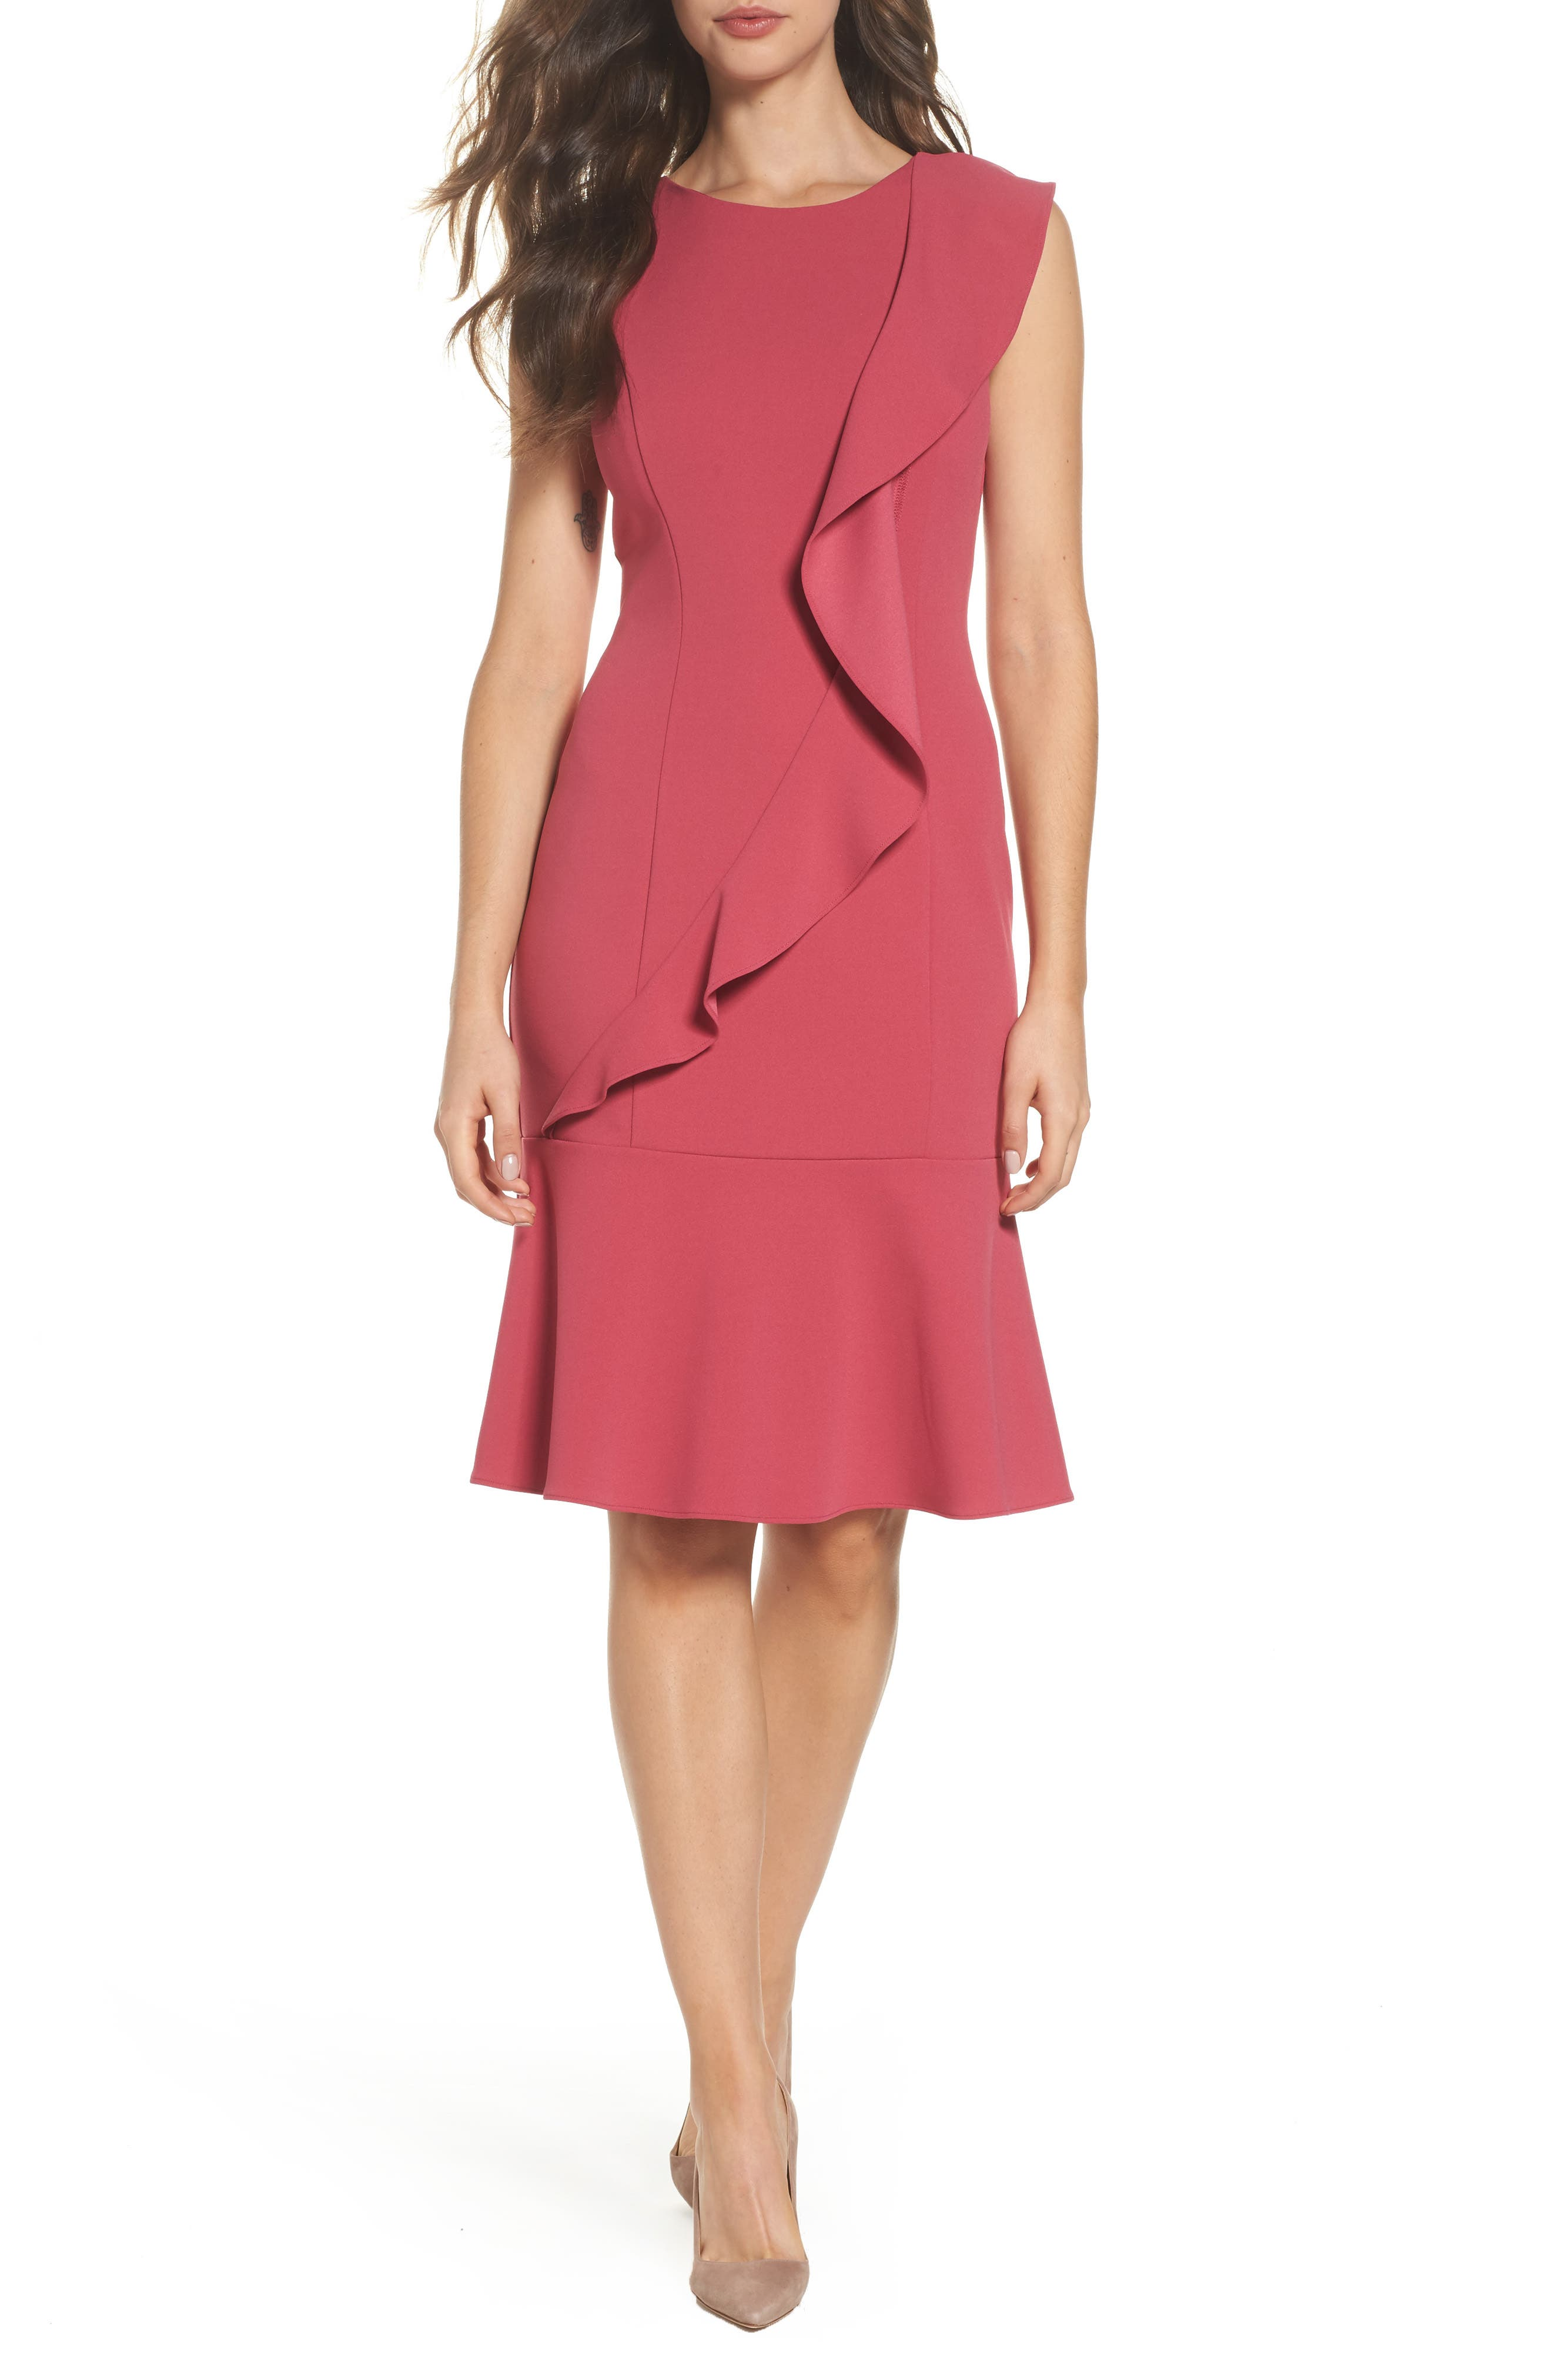 Alternate Image 1 Selected - Adrianna Papell Ruffle Crepe Dress